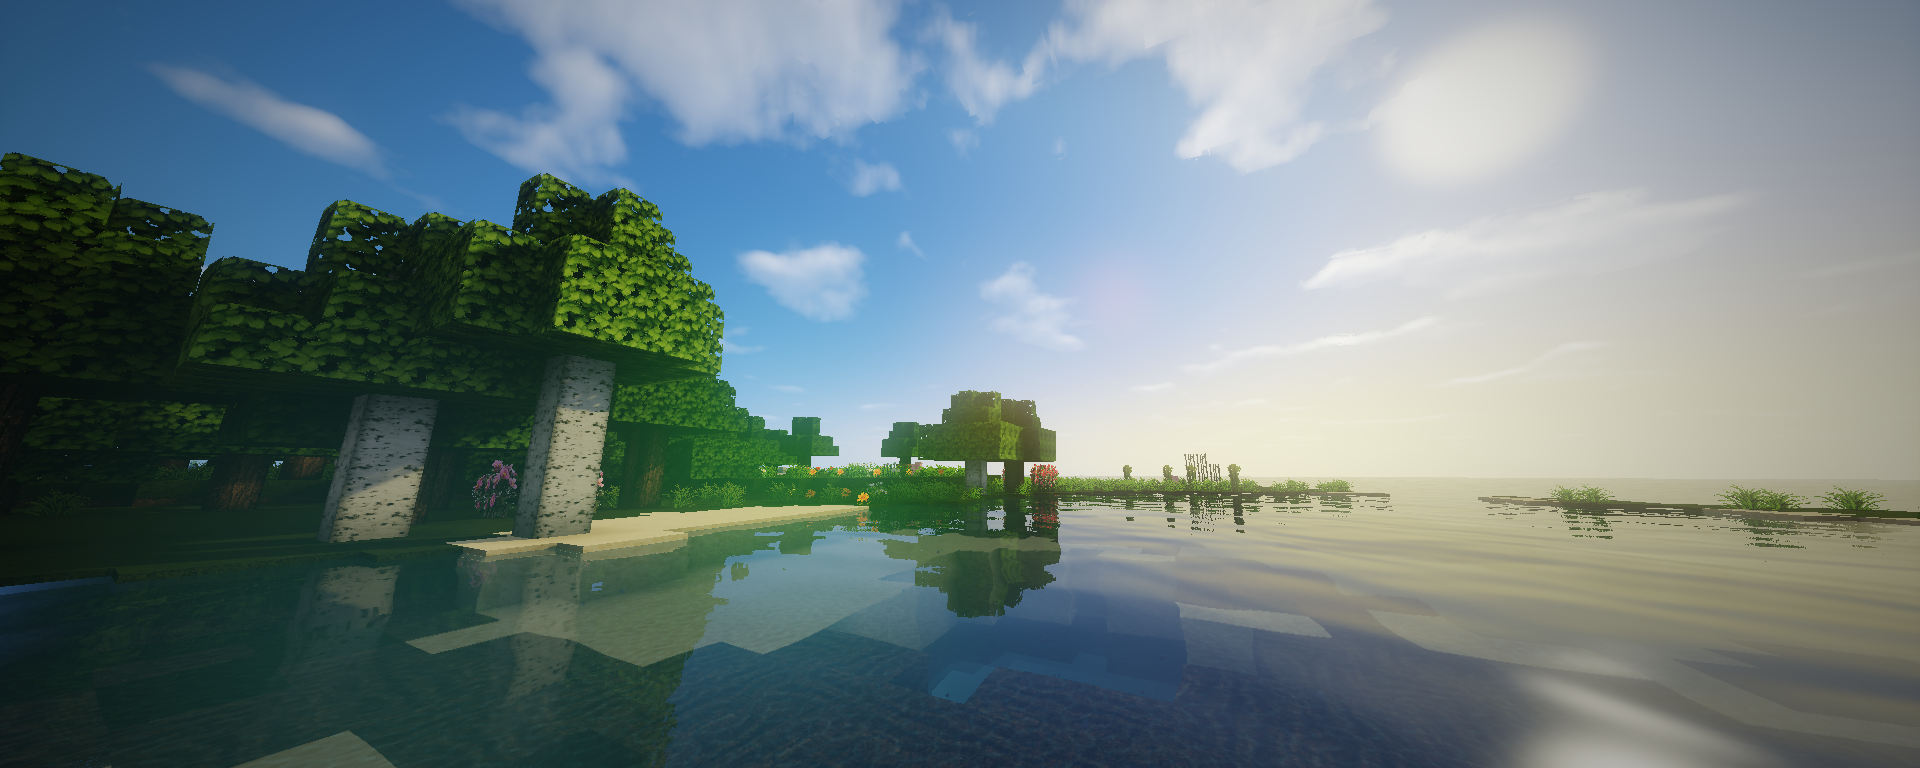 Awesome cinematic Minecraft wallpapers Ruxgeek 1920x768